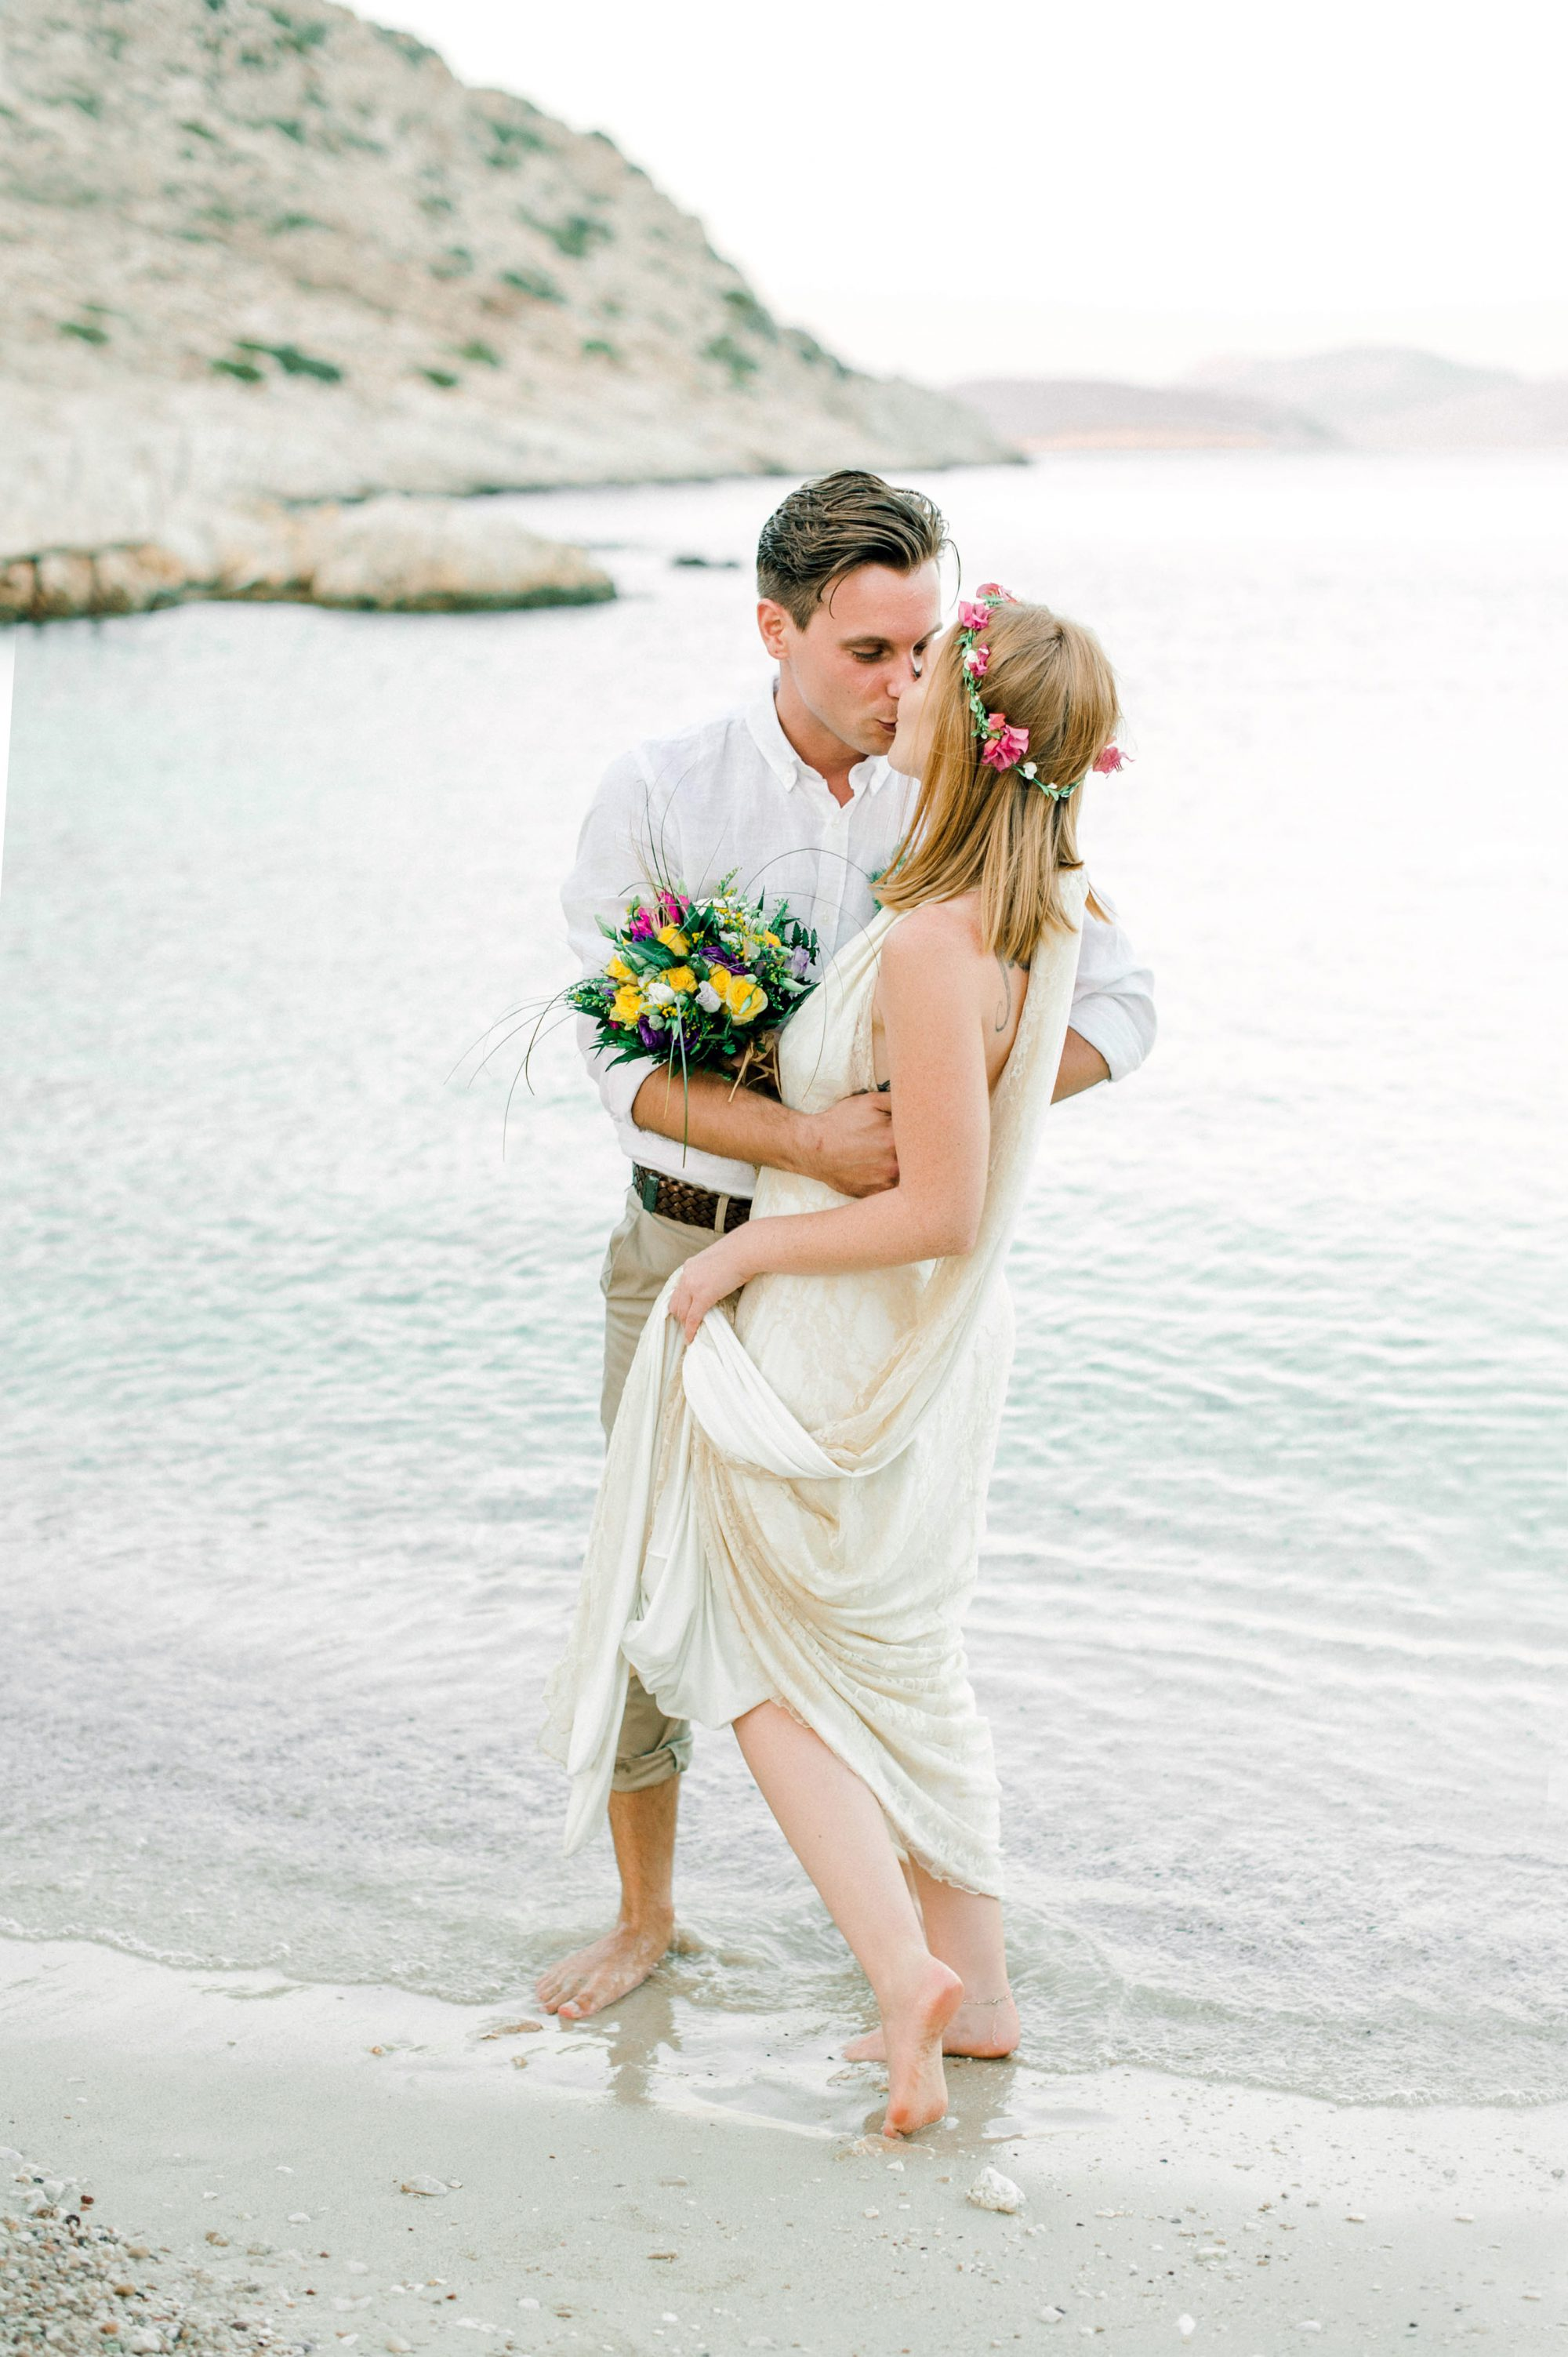 Boho intimate summer wedding in Chalki